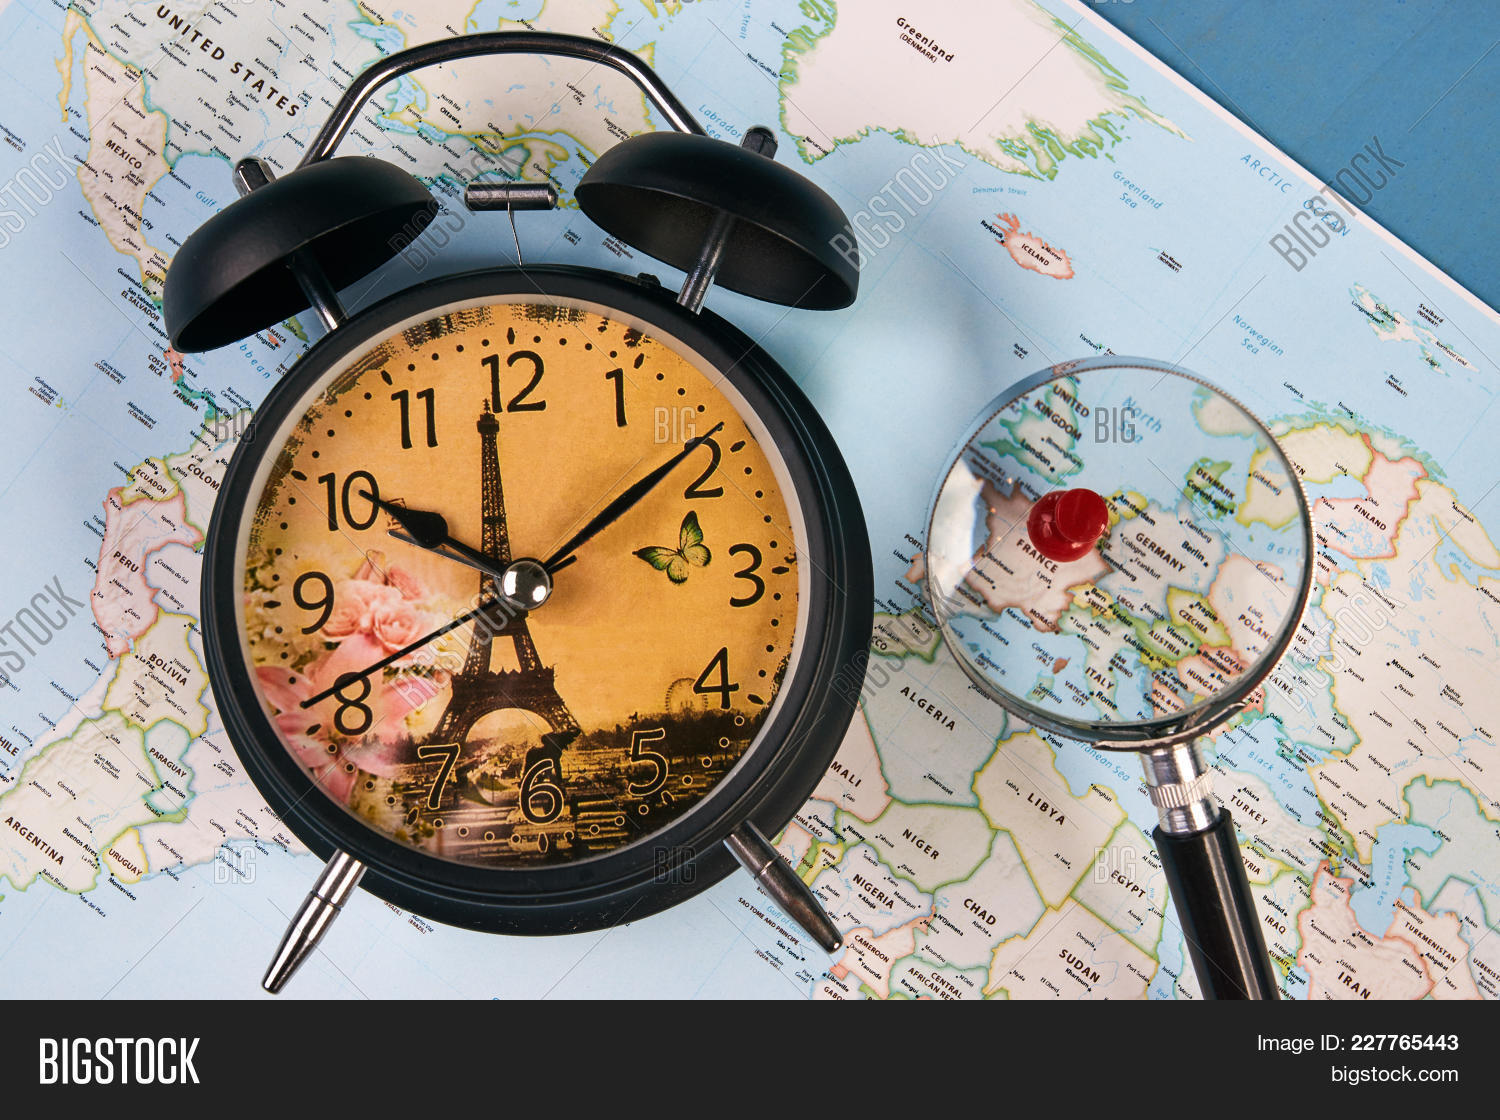 Planing travel france image photo free trial bigstock planing for travel to france paris with worldmap globe magnifying glass and alarm clock travel gumiabroncs Images